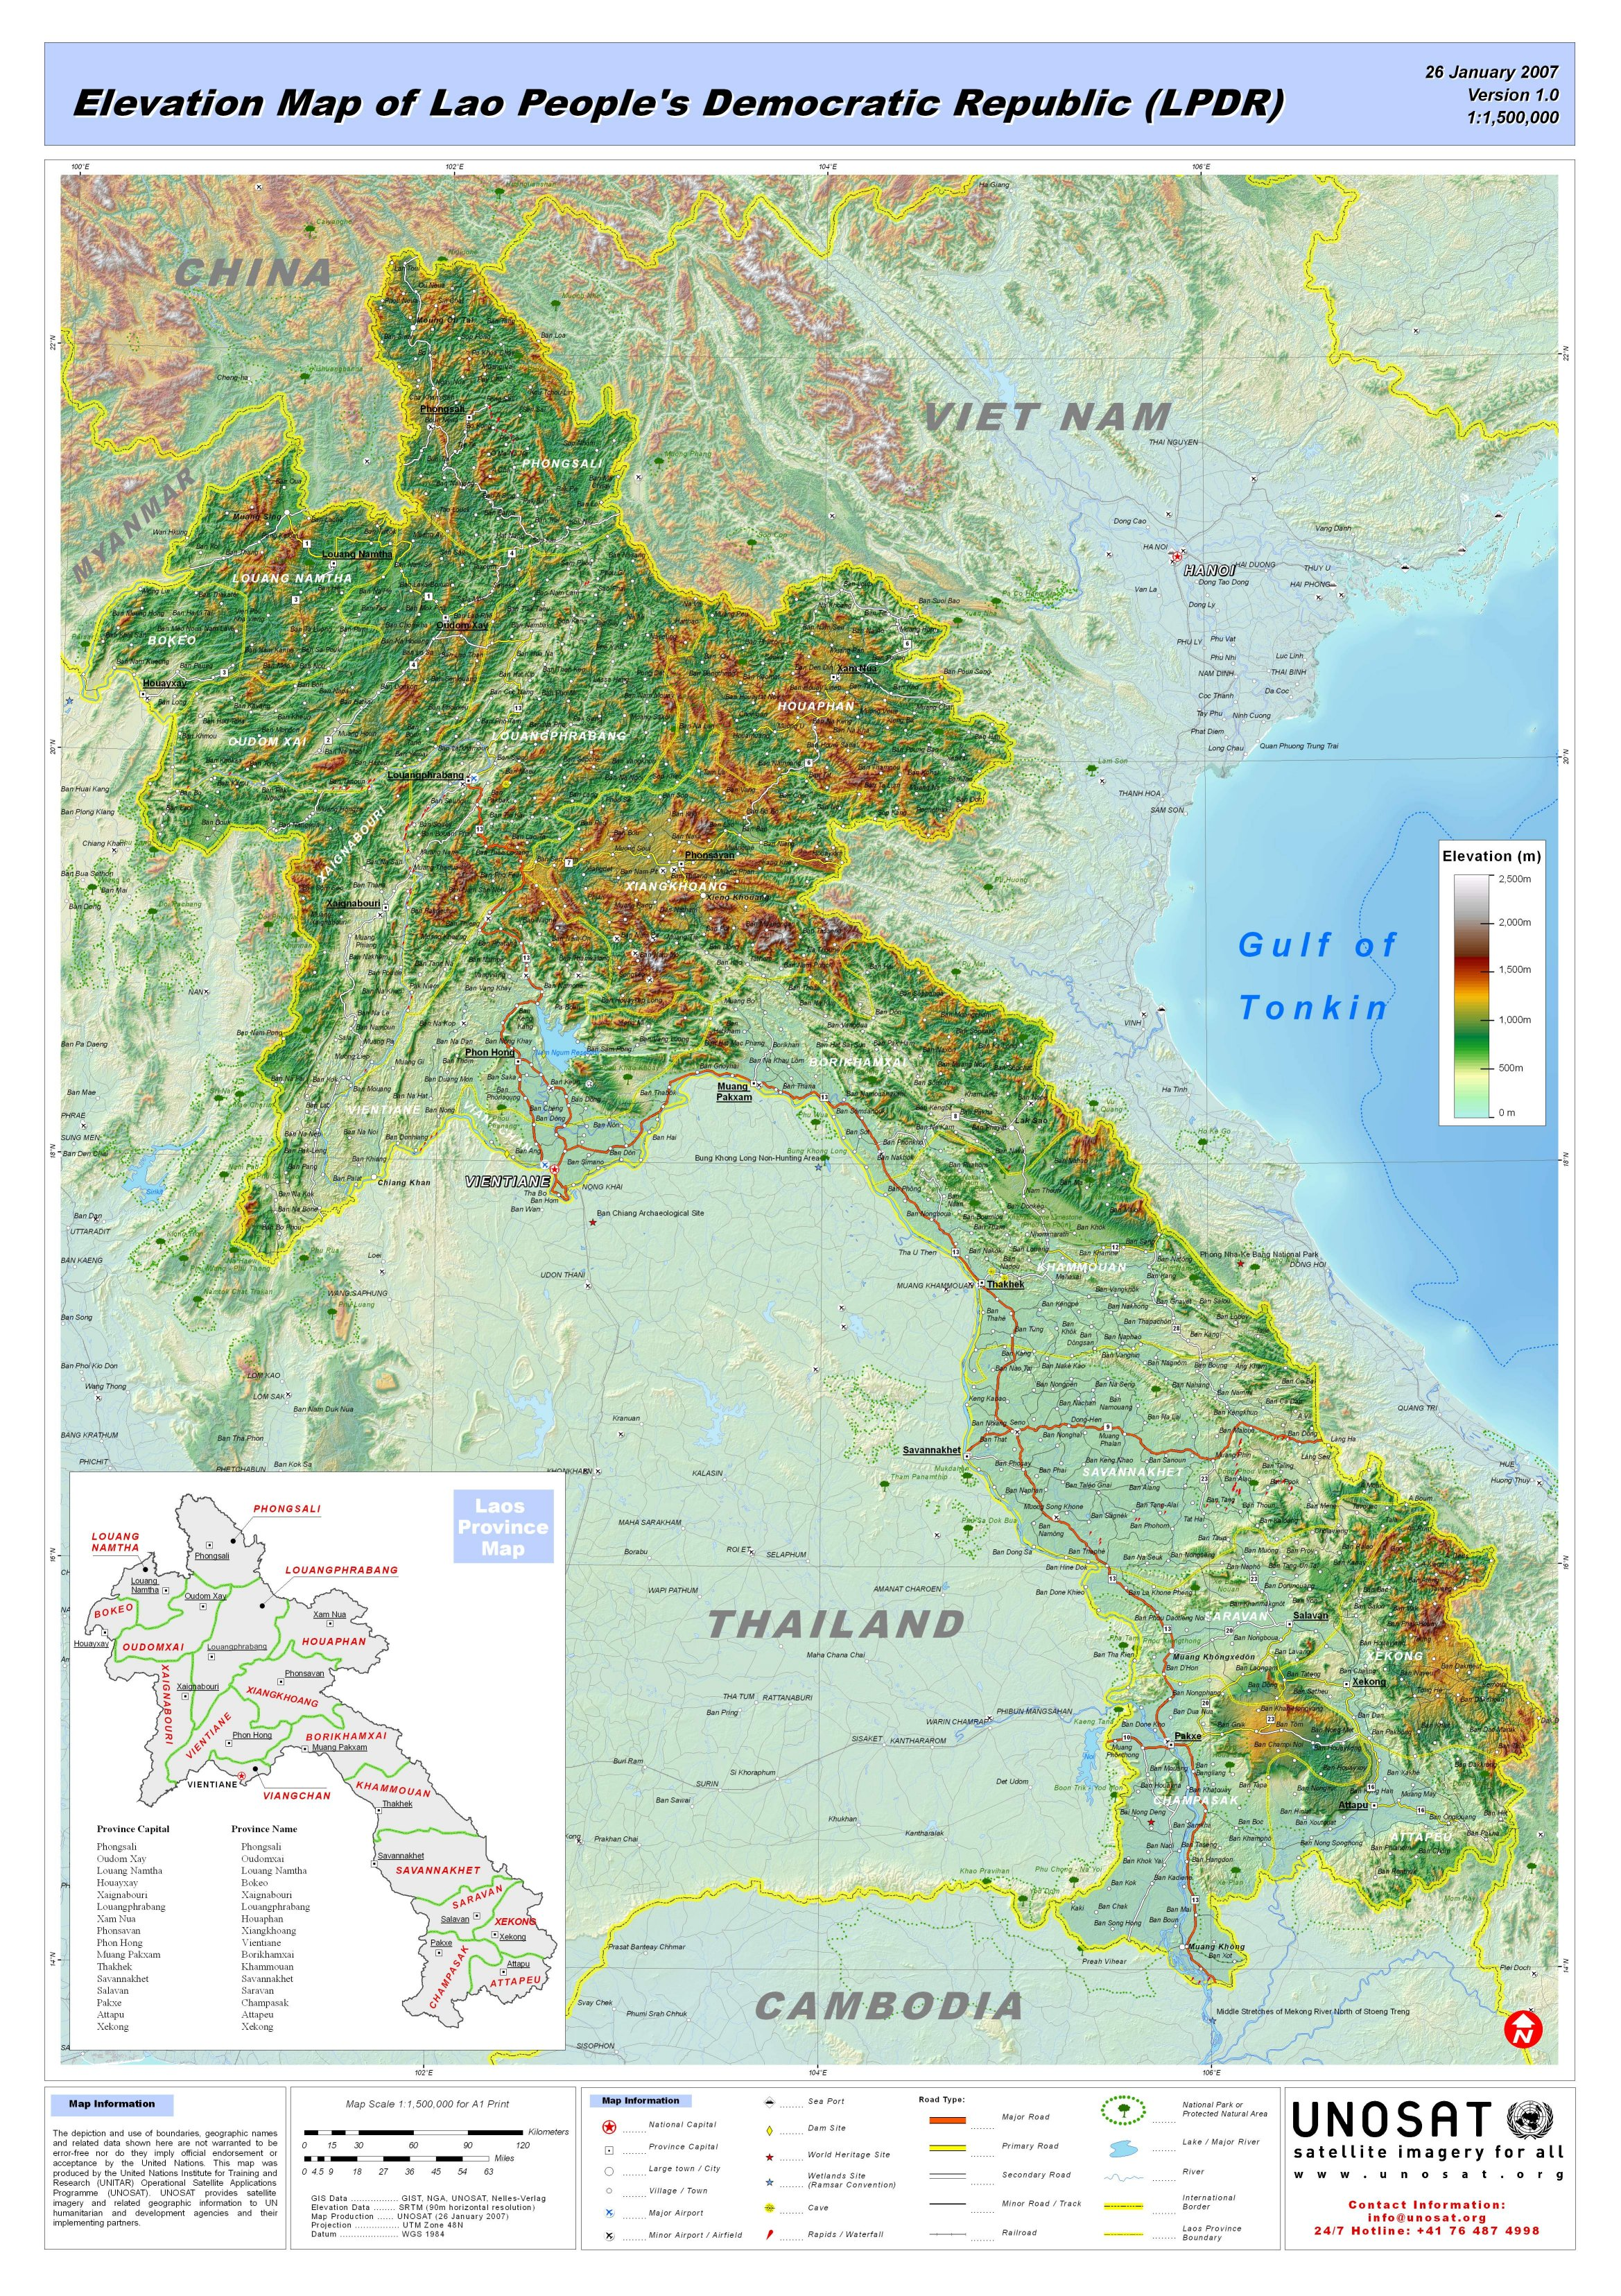 Elevation Map of Lao People´s Democratic Republic (LPDR) | UNITAR